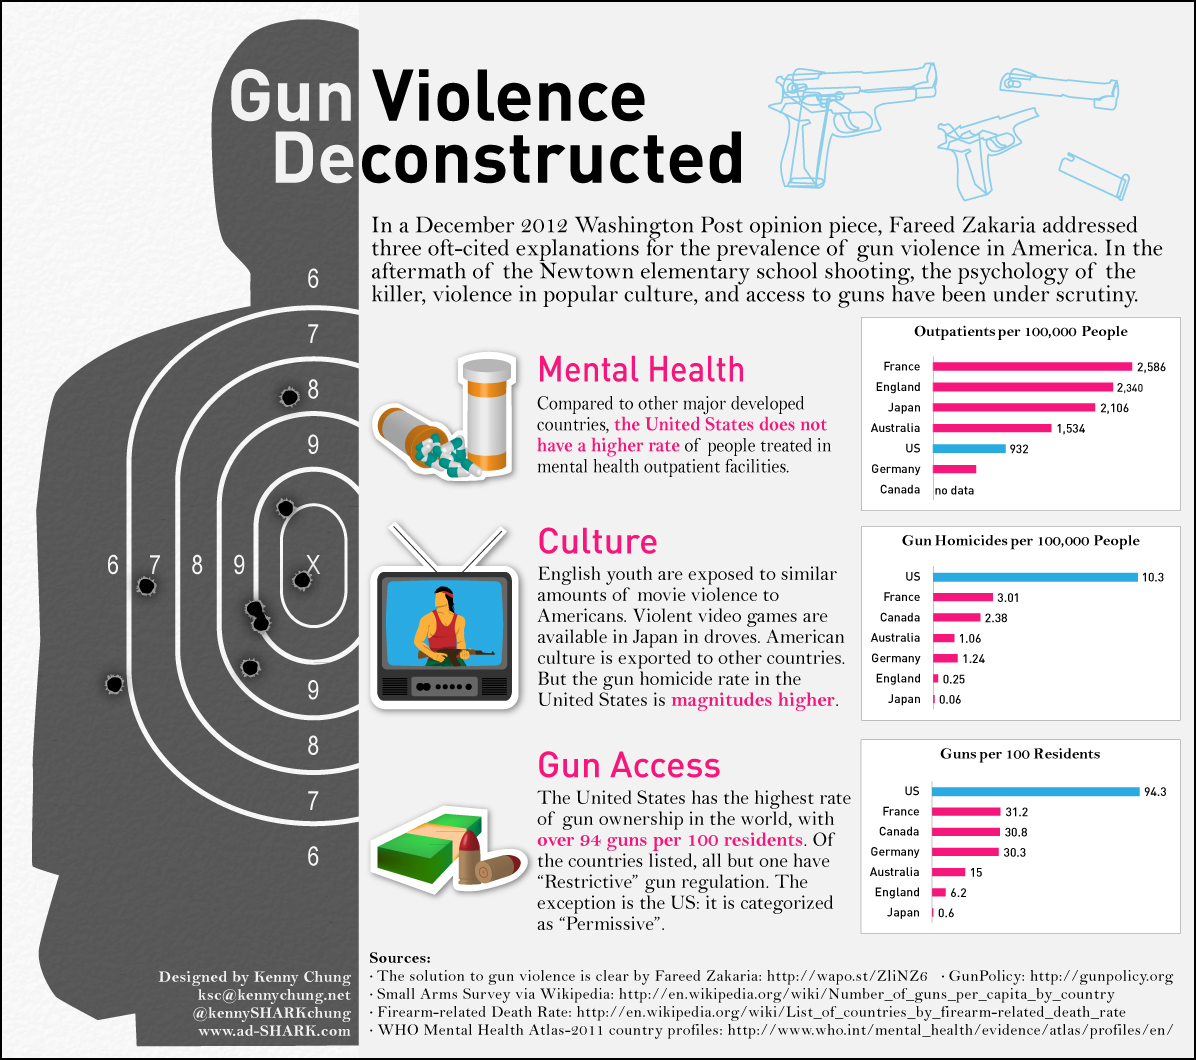 Infographic comparing reasons for gun violence that have been debated.